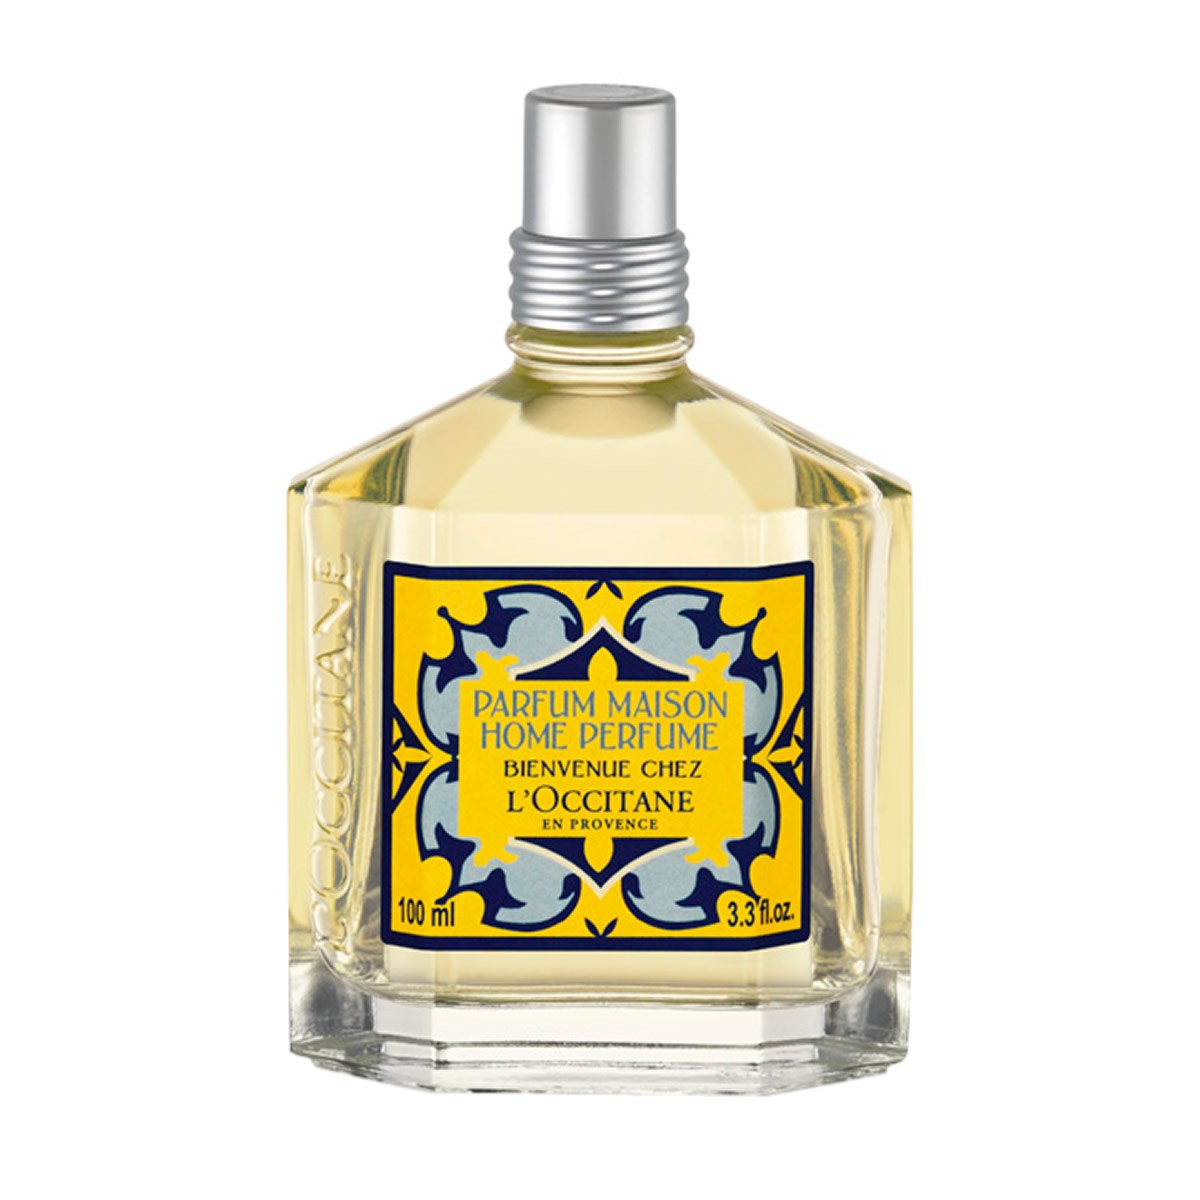 L'Occitane En Provence Welcome Home Perfume